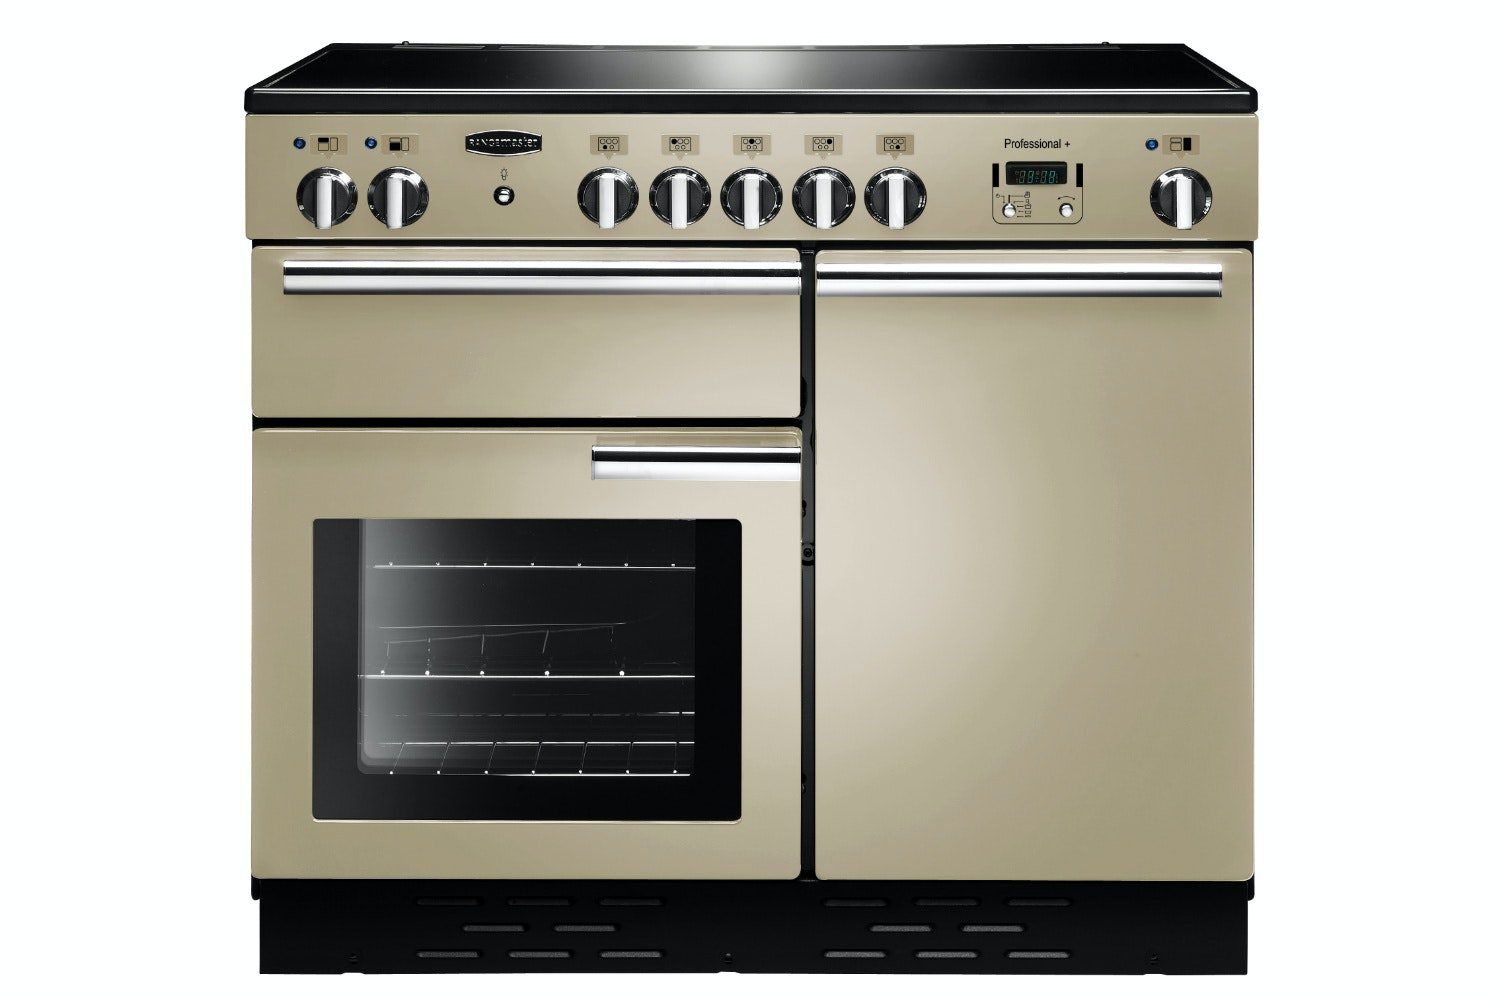 Rangemaster Pro Plus 100cm Induction Range Cooker | PROP100EICR/C